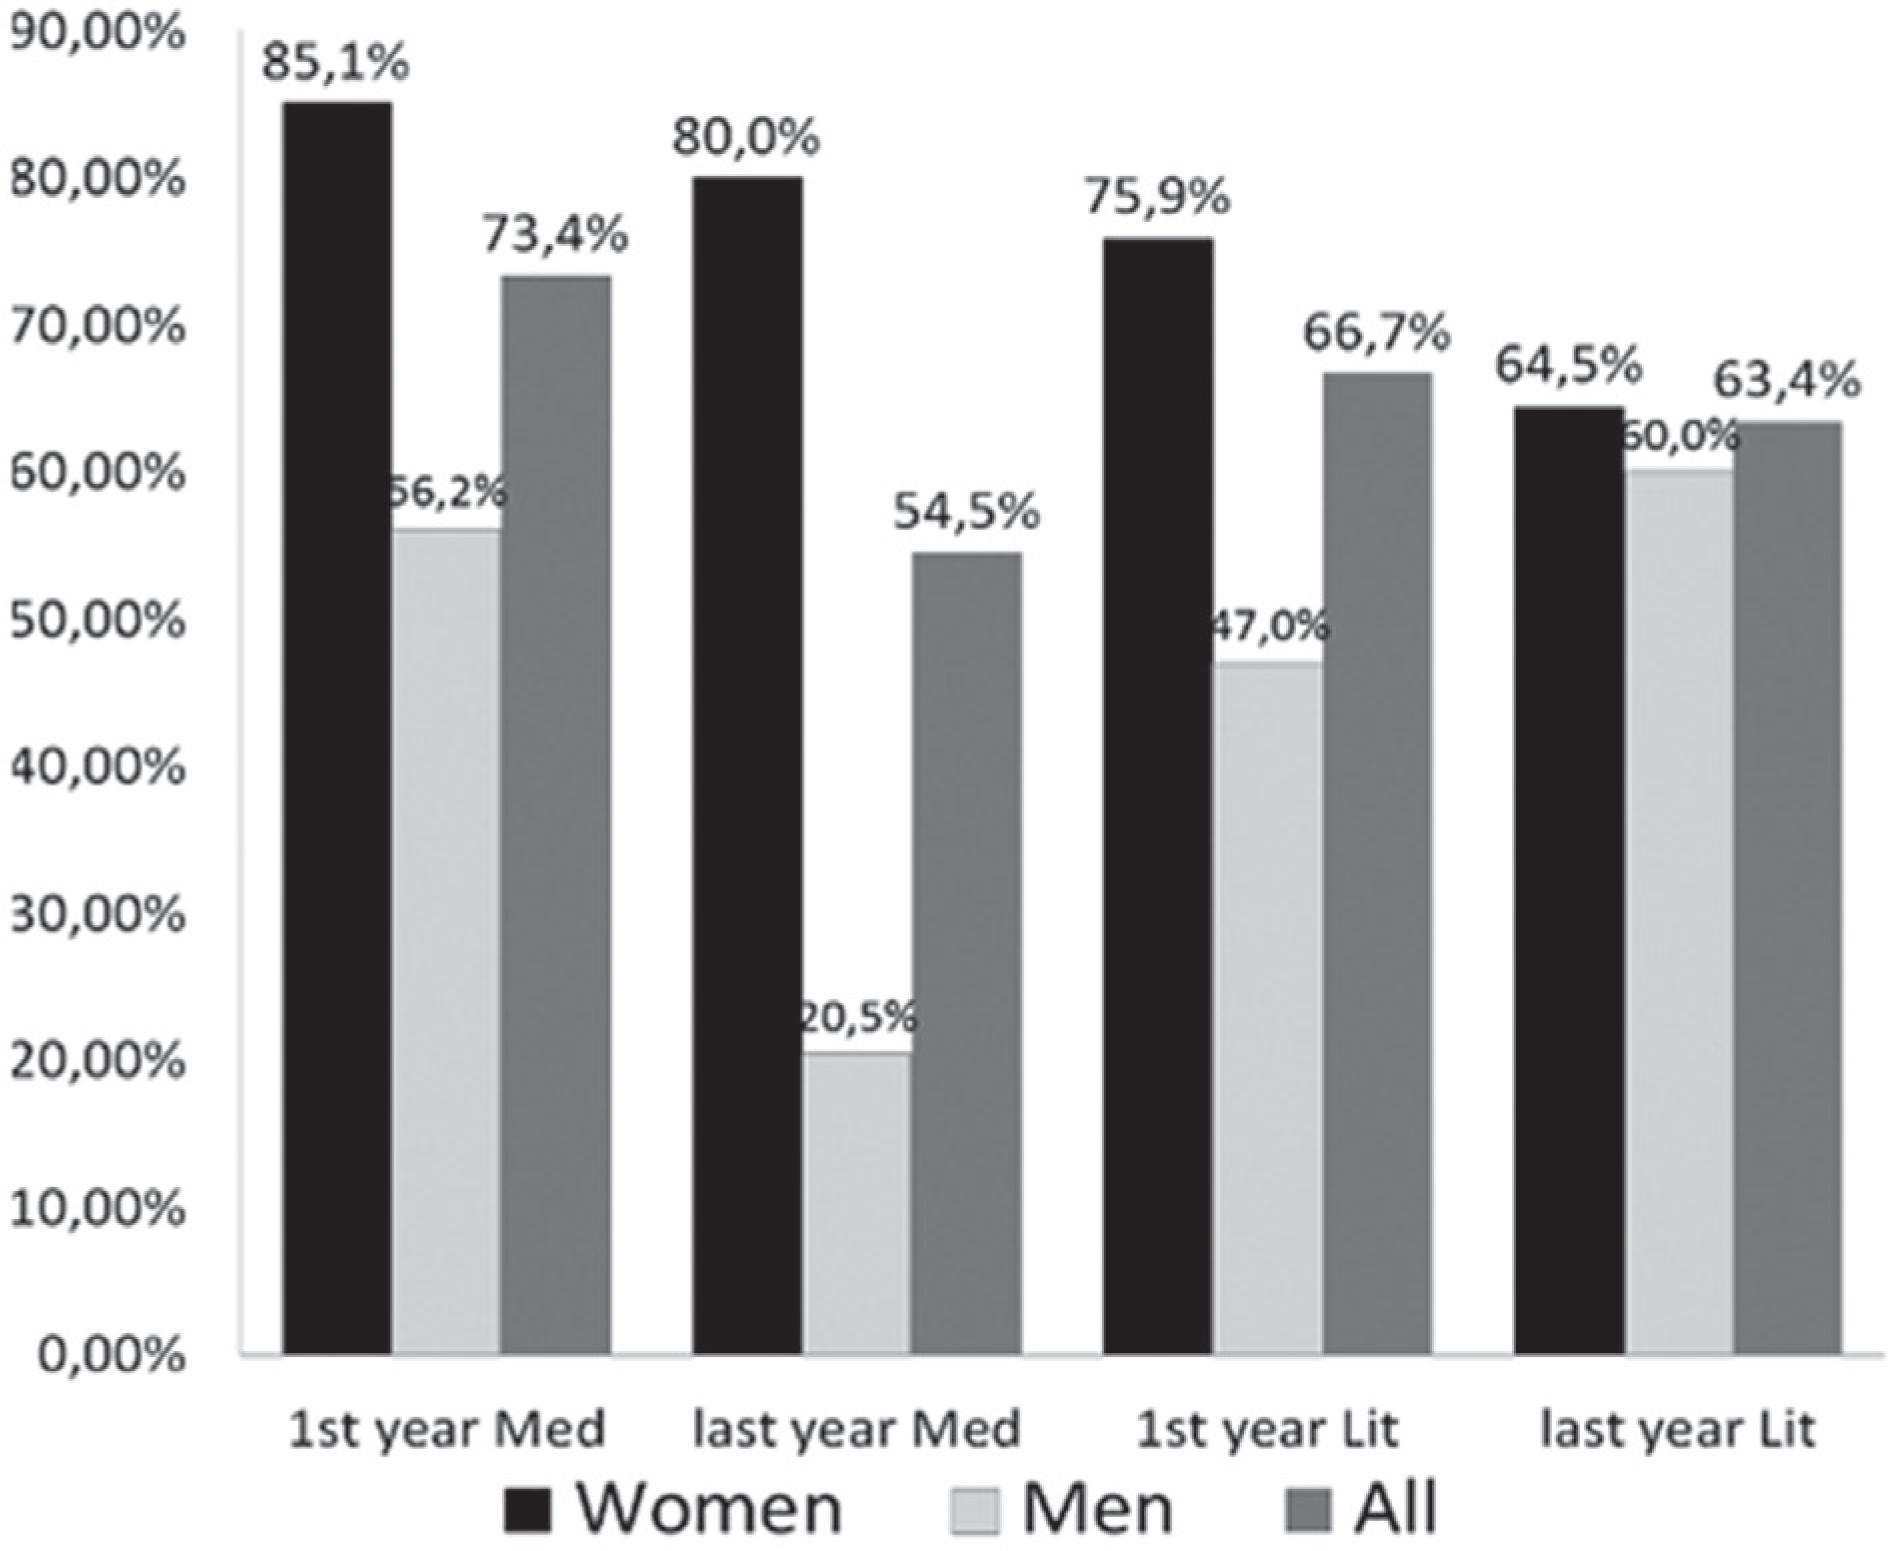 Interest in being vaccinated according to gender. Med= Medicine; Lit= Literature.